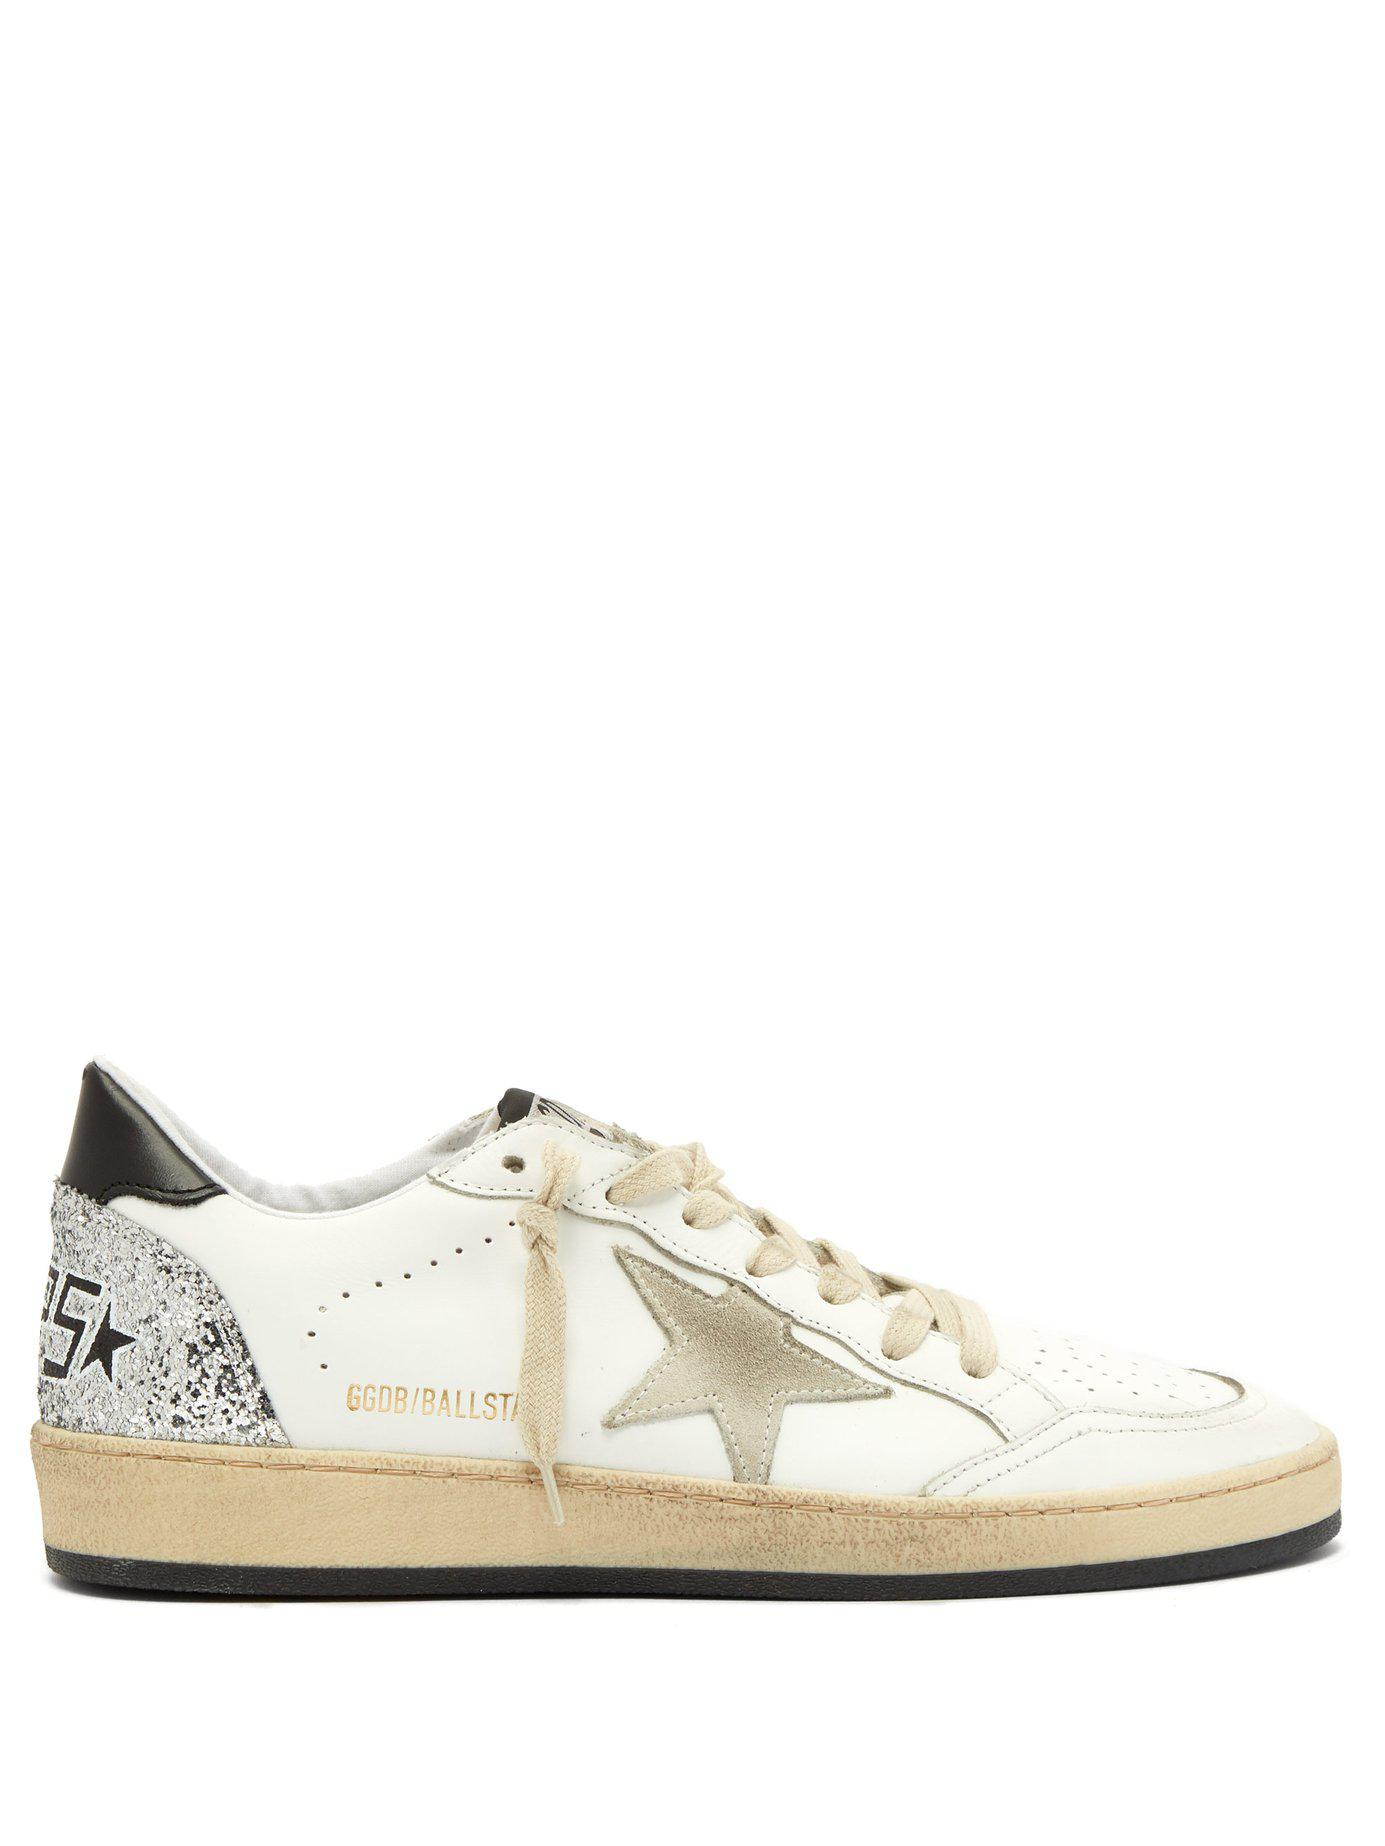 b858b452fae6a Lyst - Golden Goose Deluxe Brand Ballstar Low Top Leather Trainers ...